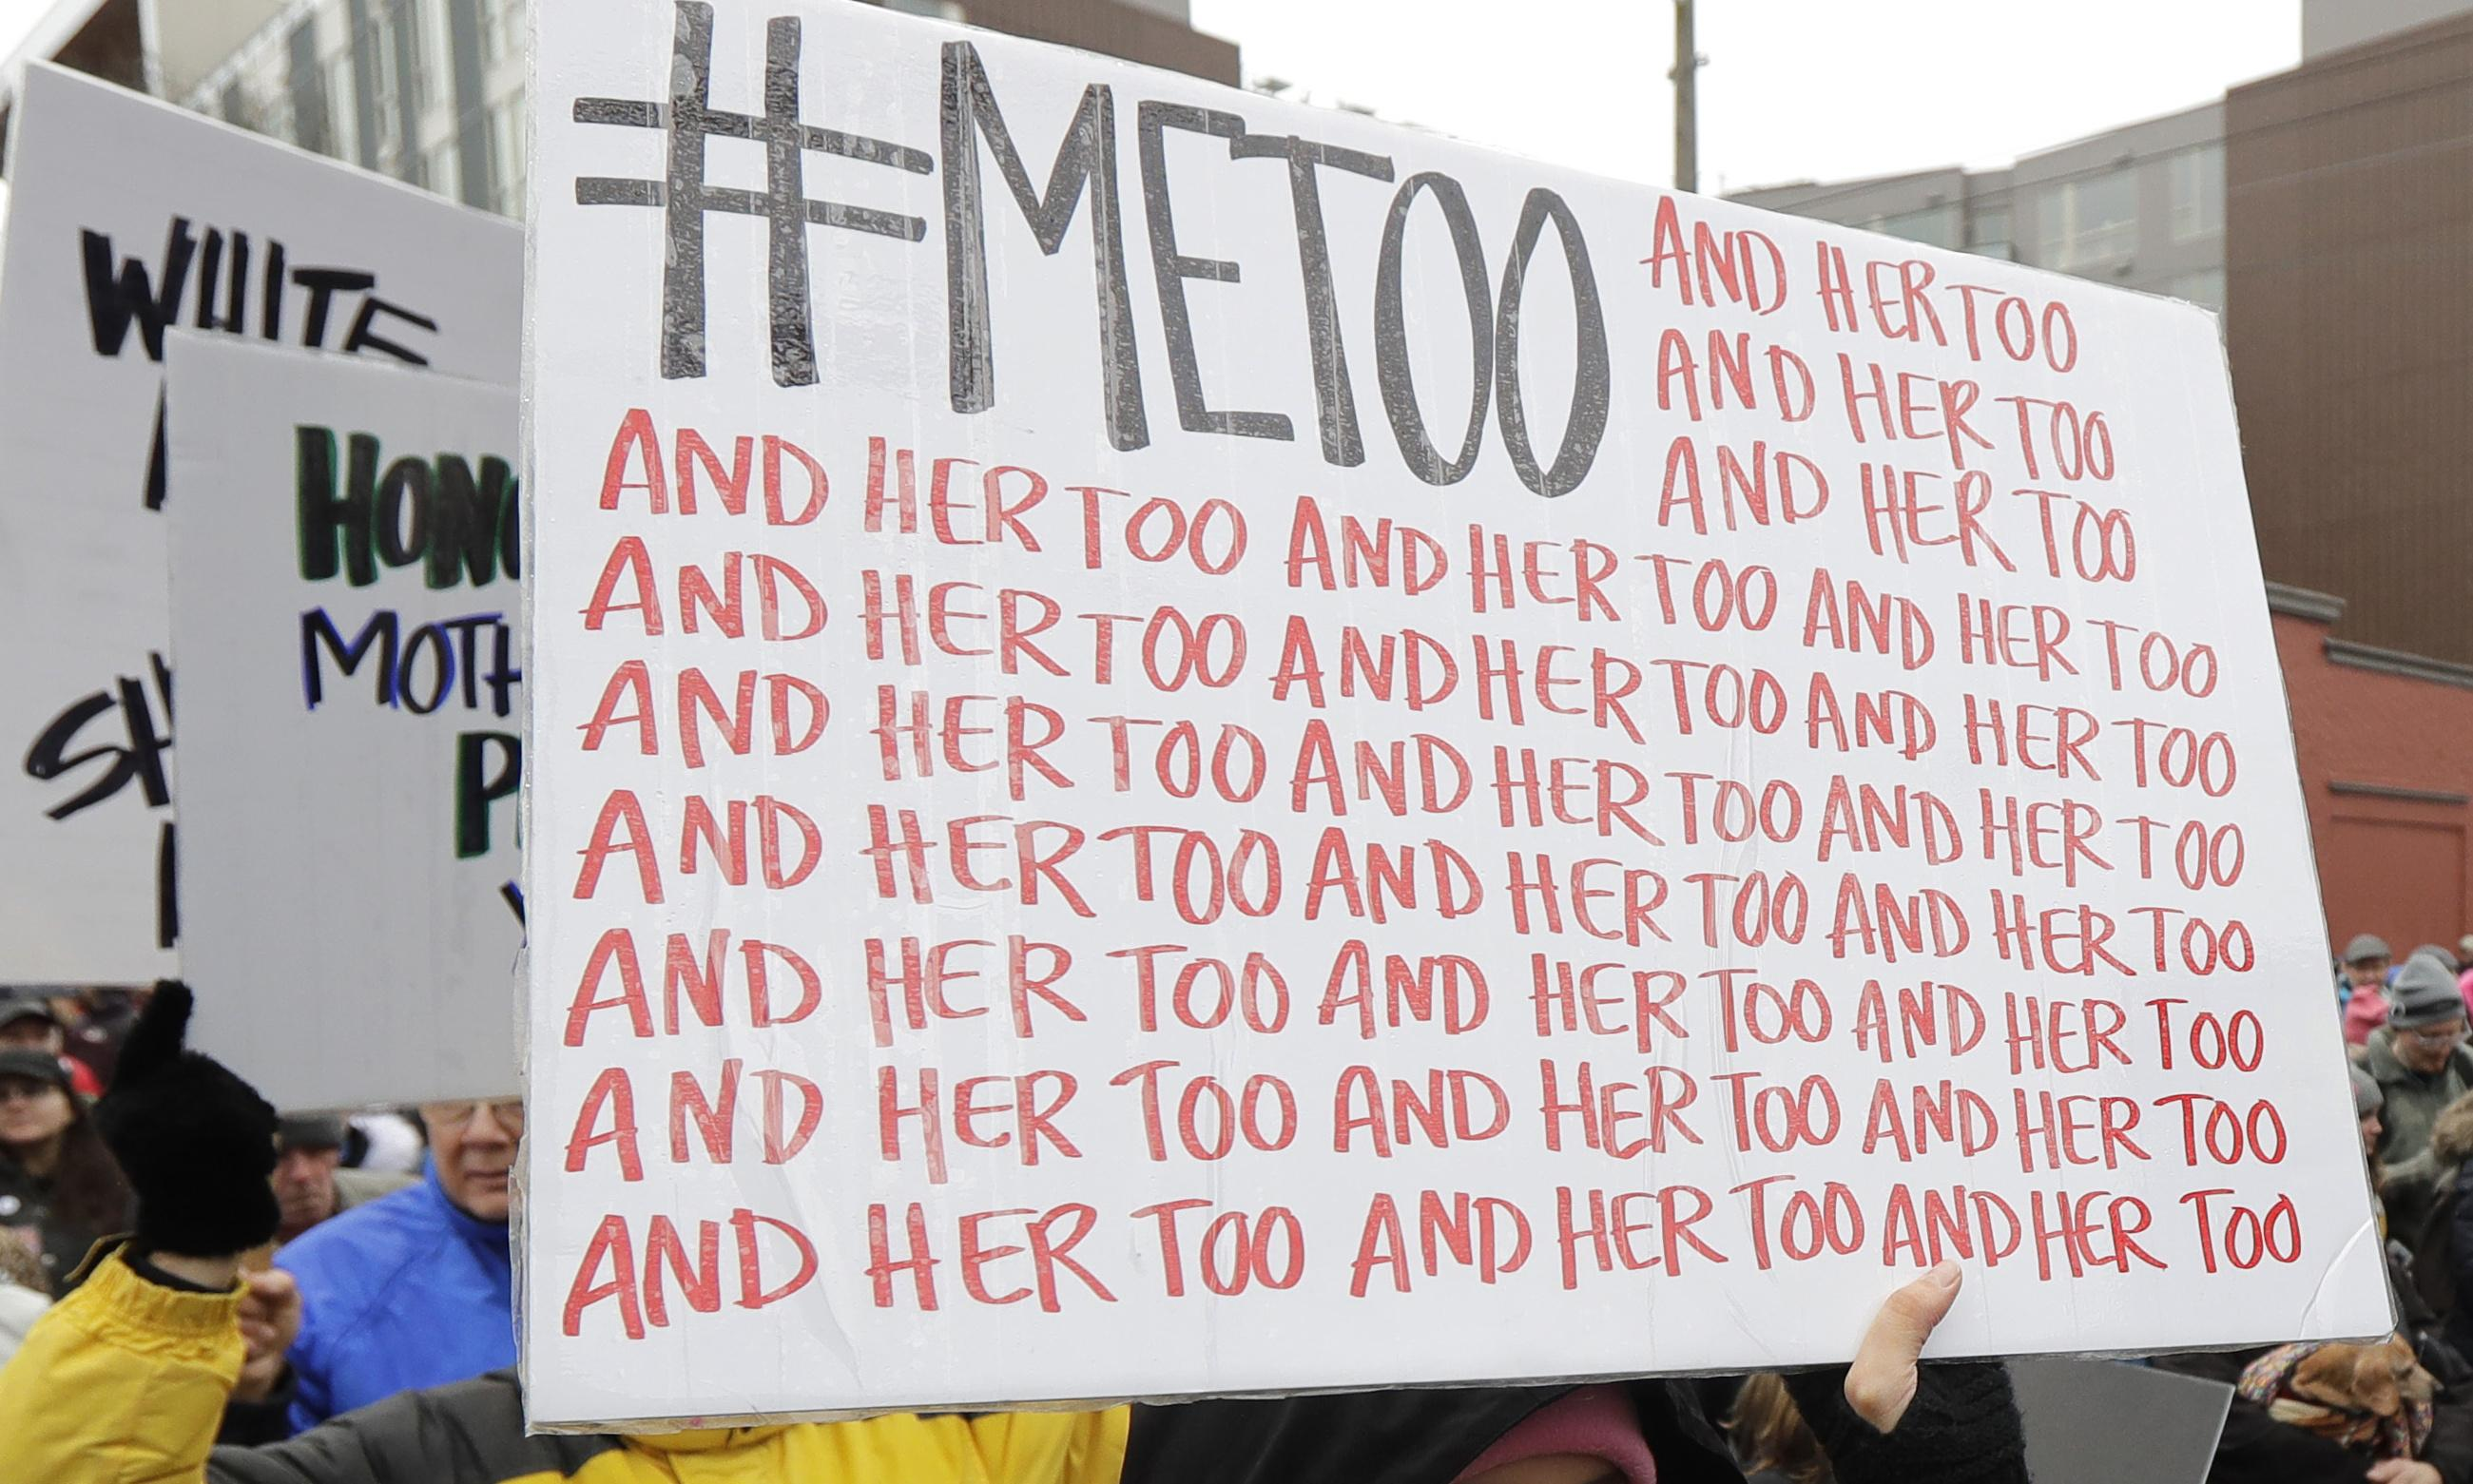 Women let down by the justice system, two years on from #MeToo